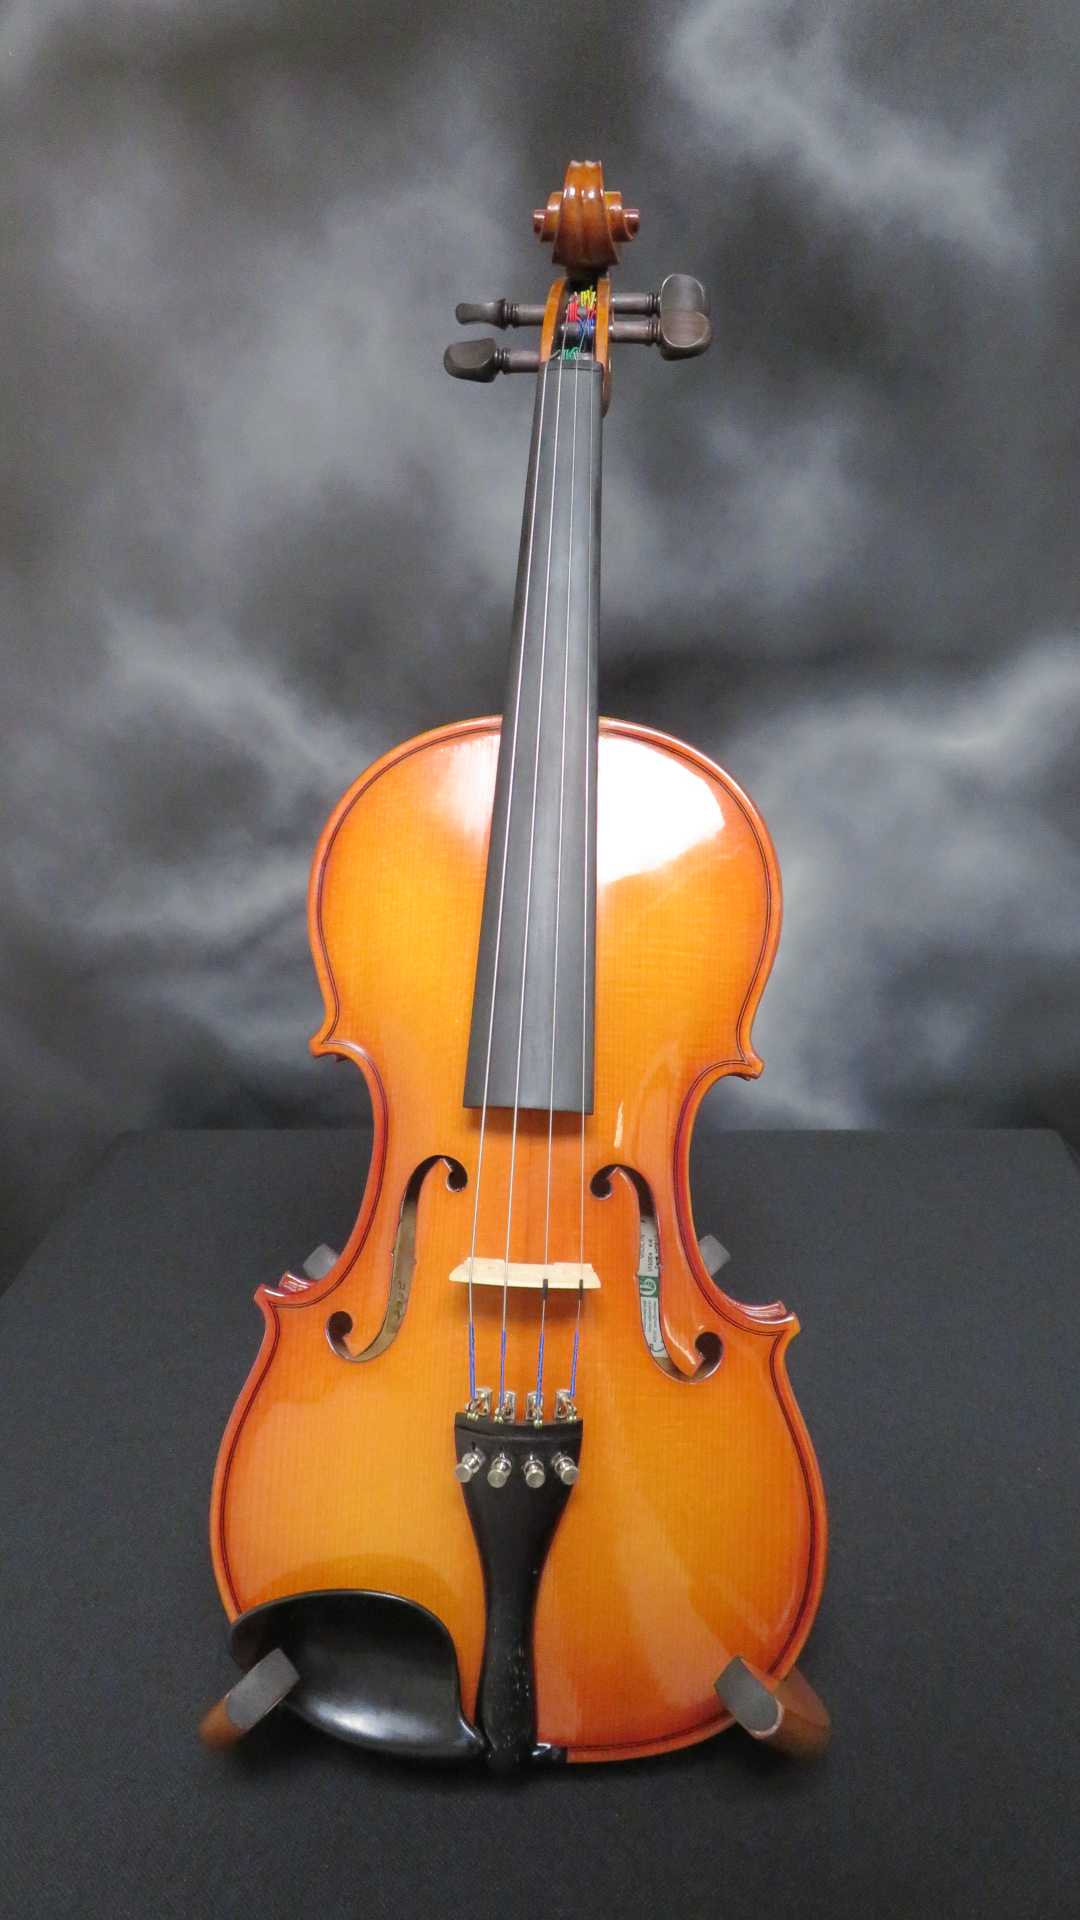 Glaesel - VI30E4 VIOLIN W/ CASE AND BOW